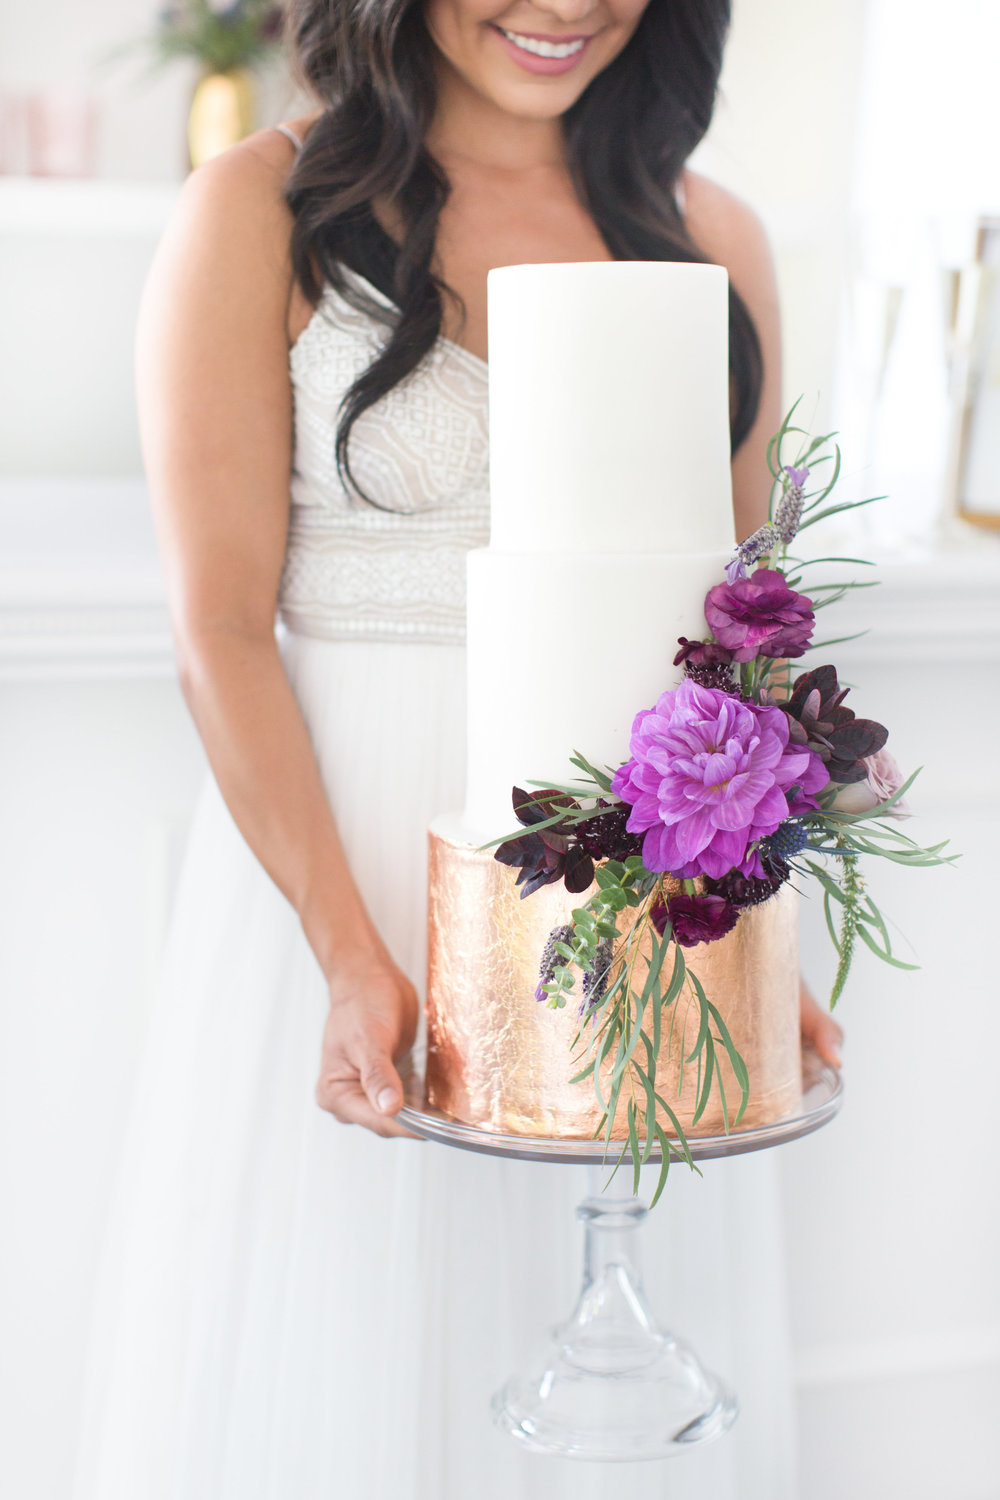 Amy & Jordan Workshop - white and gold cake with purple floral accents